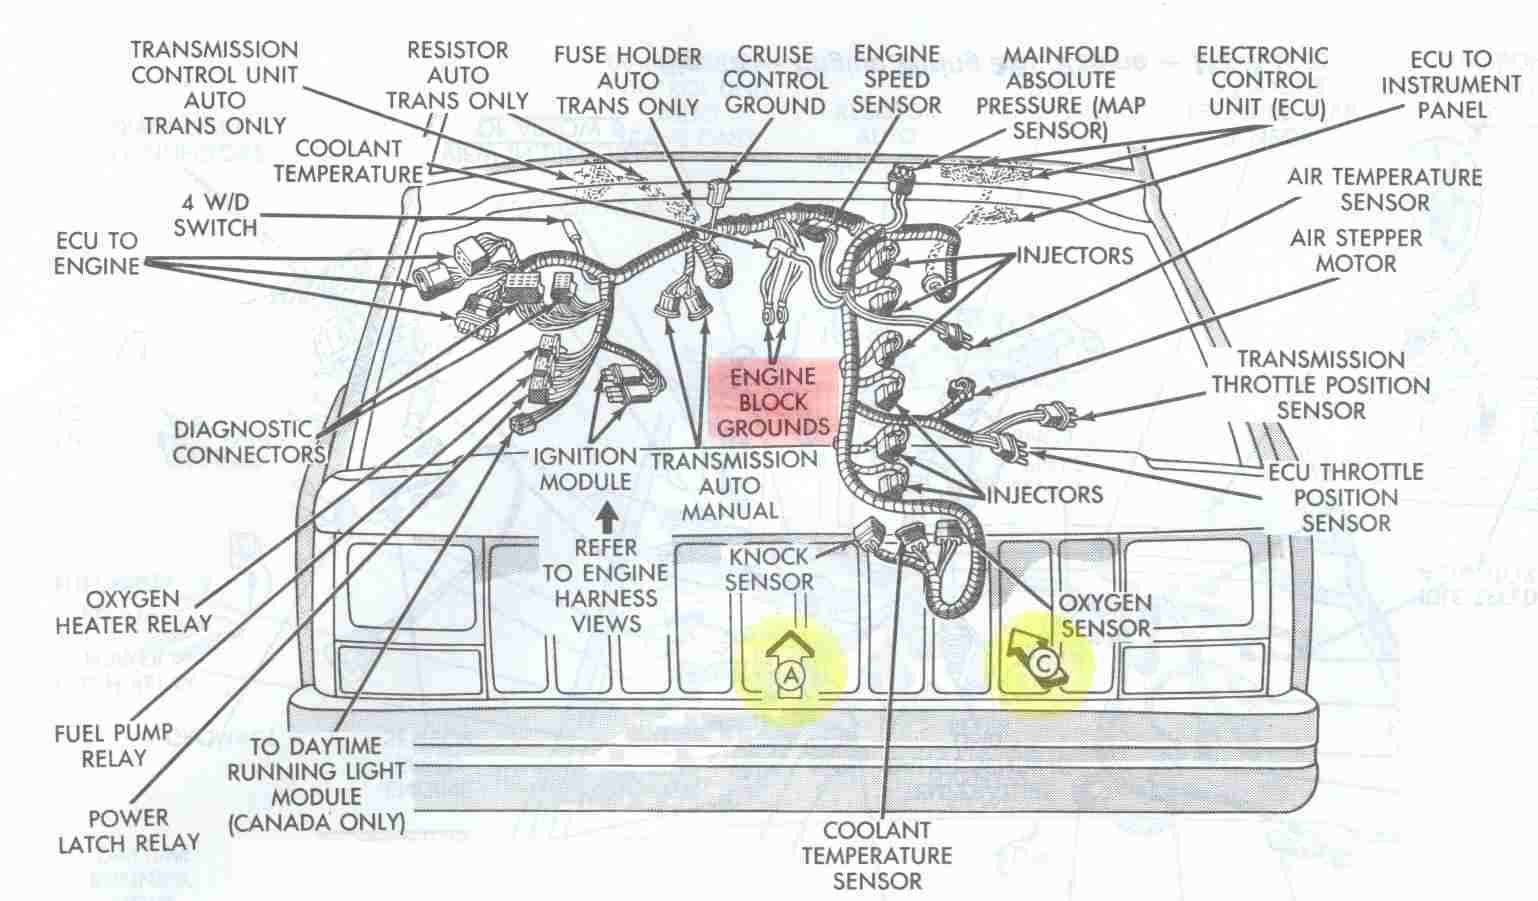 ab0134a7d9e021431187af597eb4aeca engine bay schematic showing major electrical ground points for 2001 jeep cherokee wiring diagram at bakdesigns.co